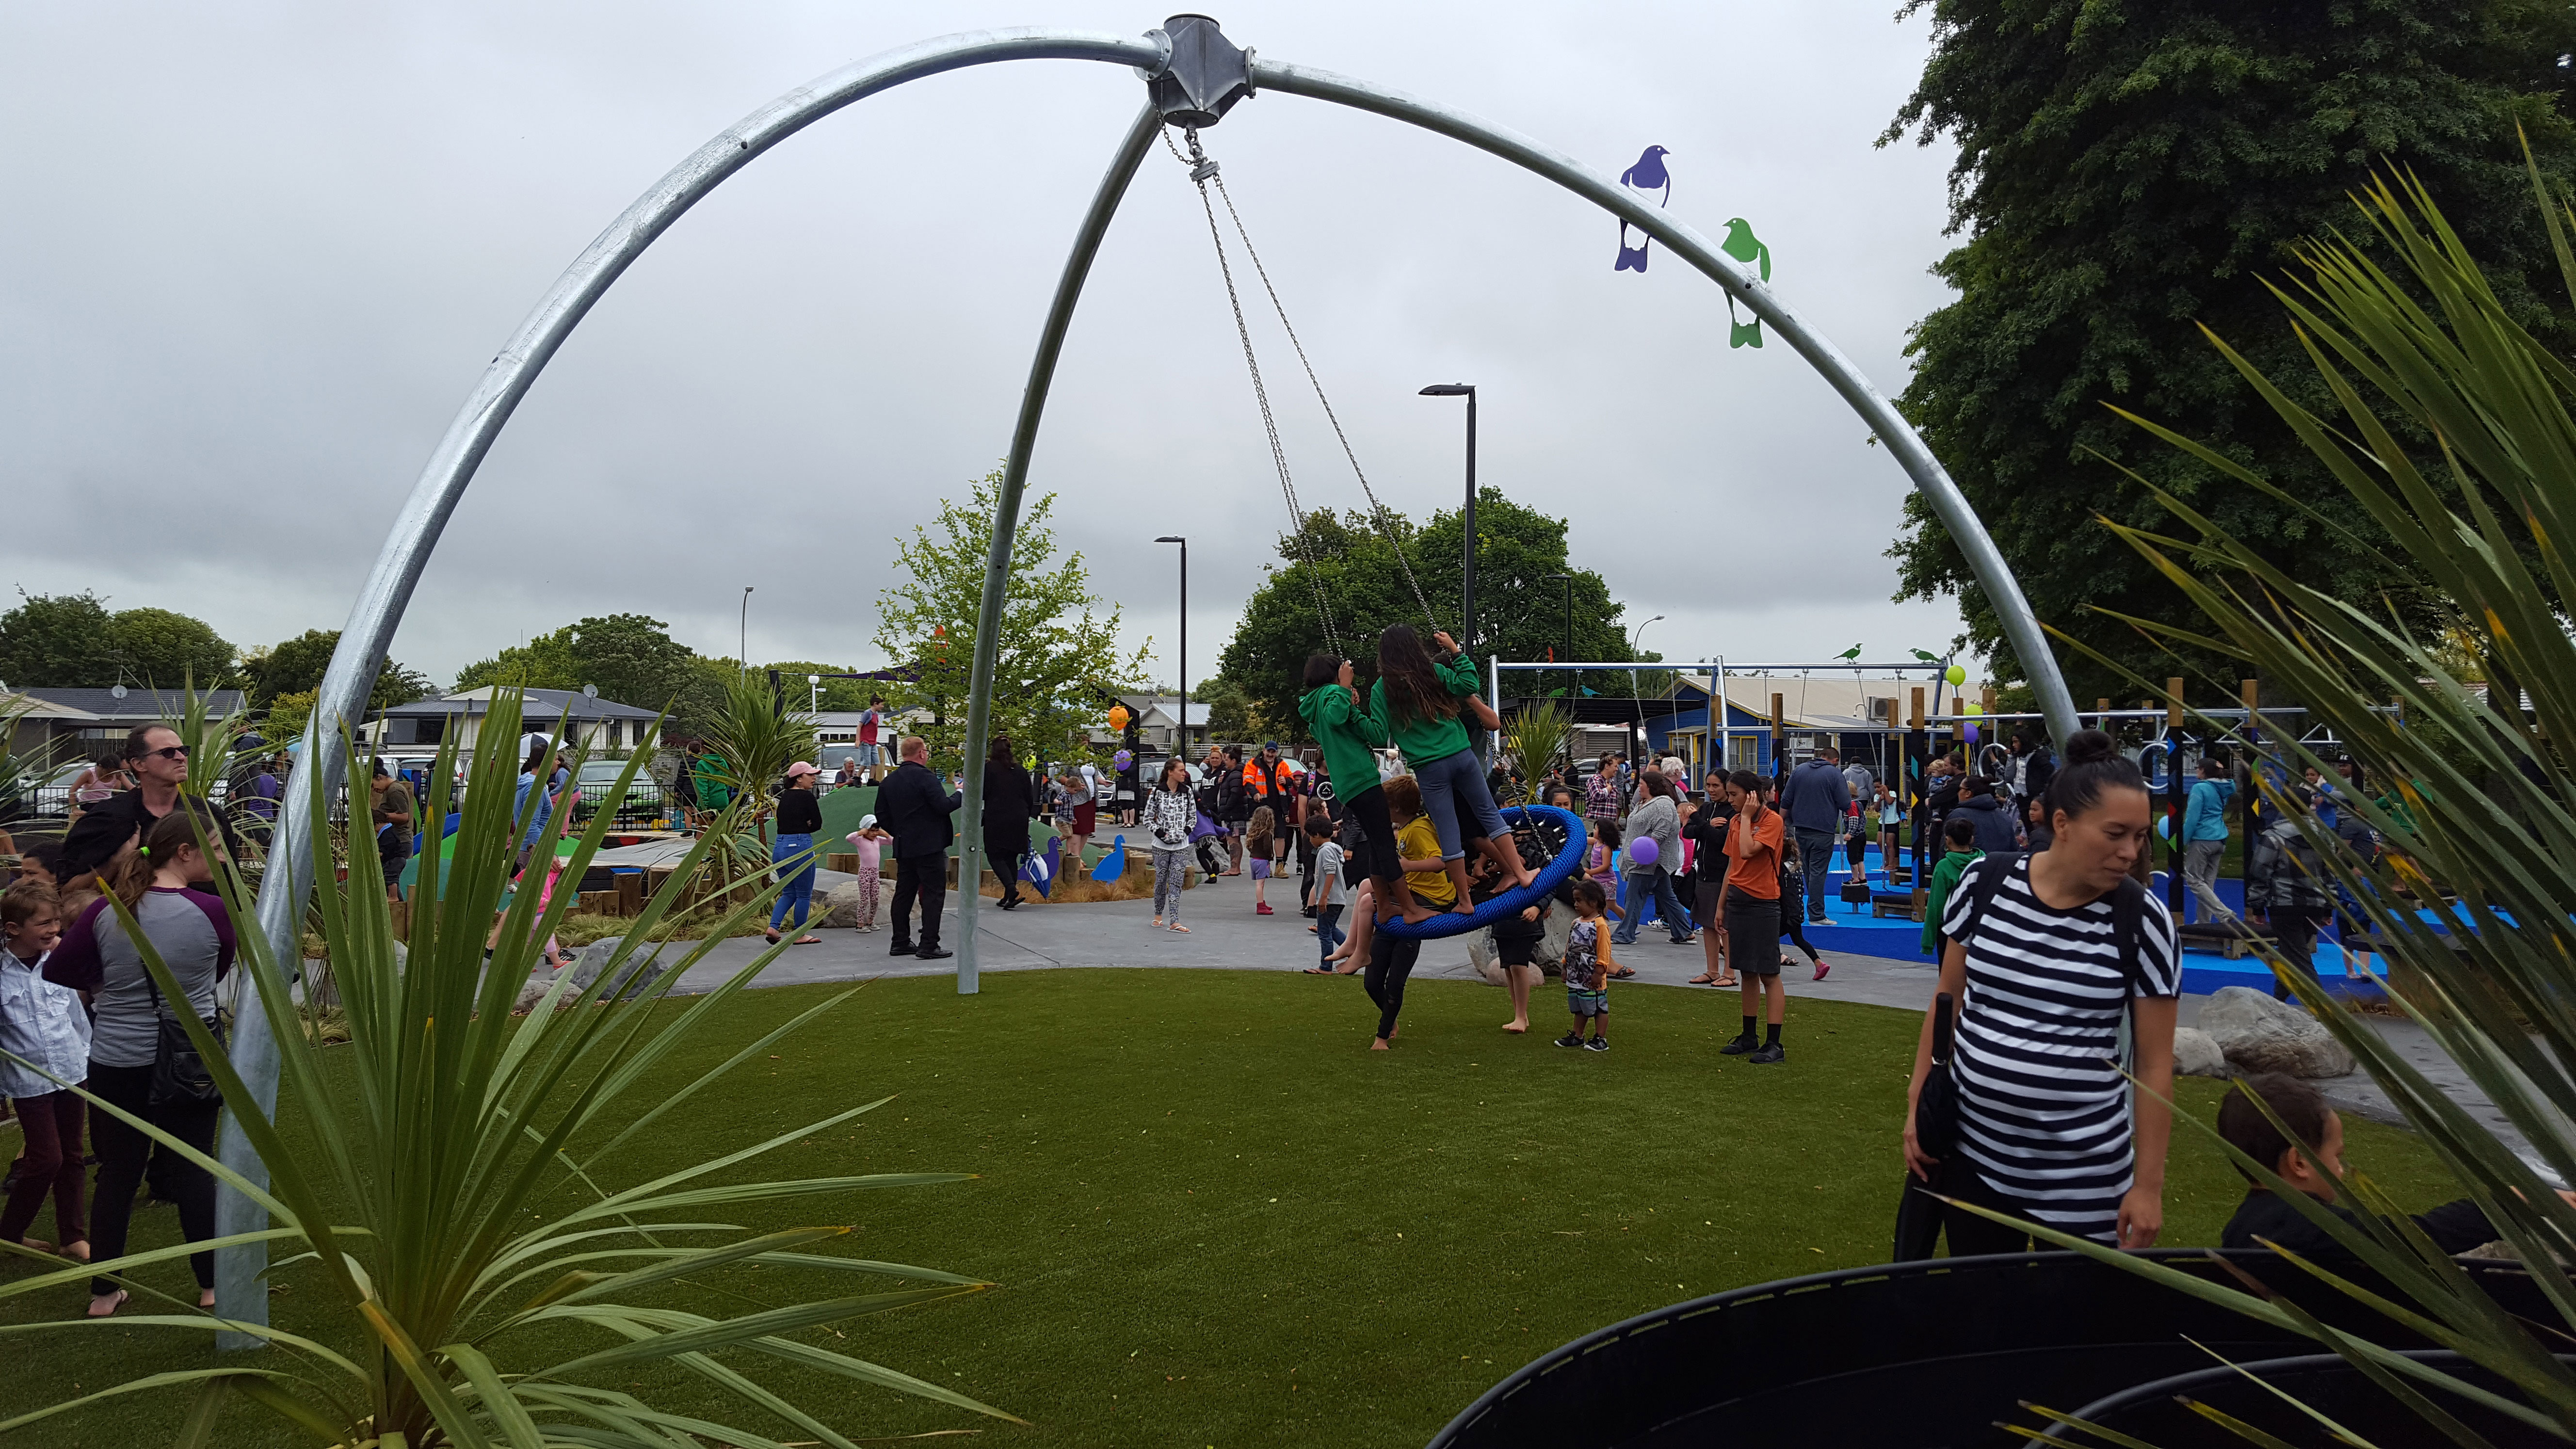 playgrounds and artificial grass